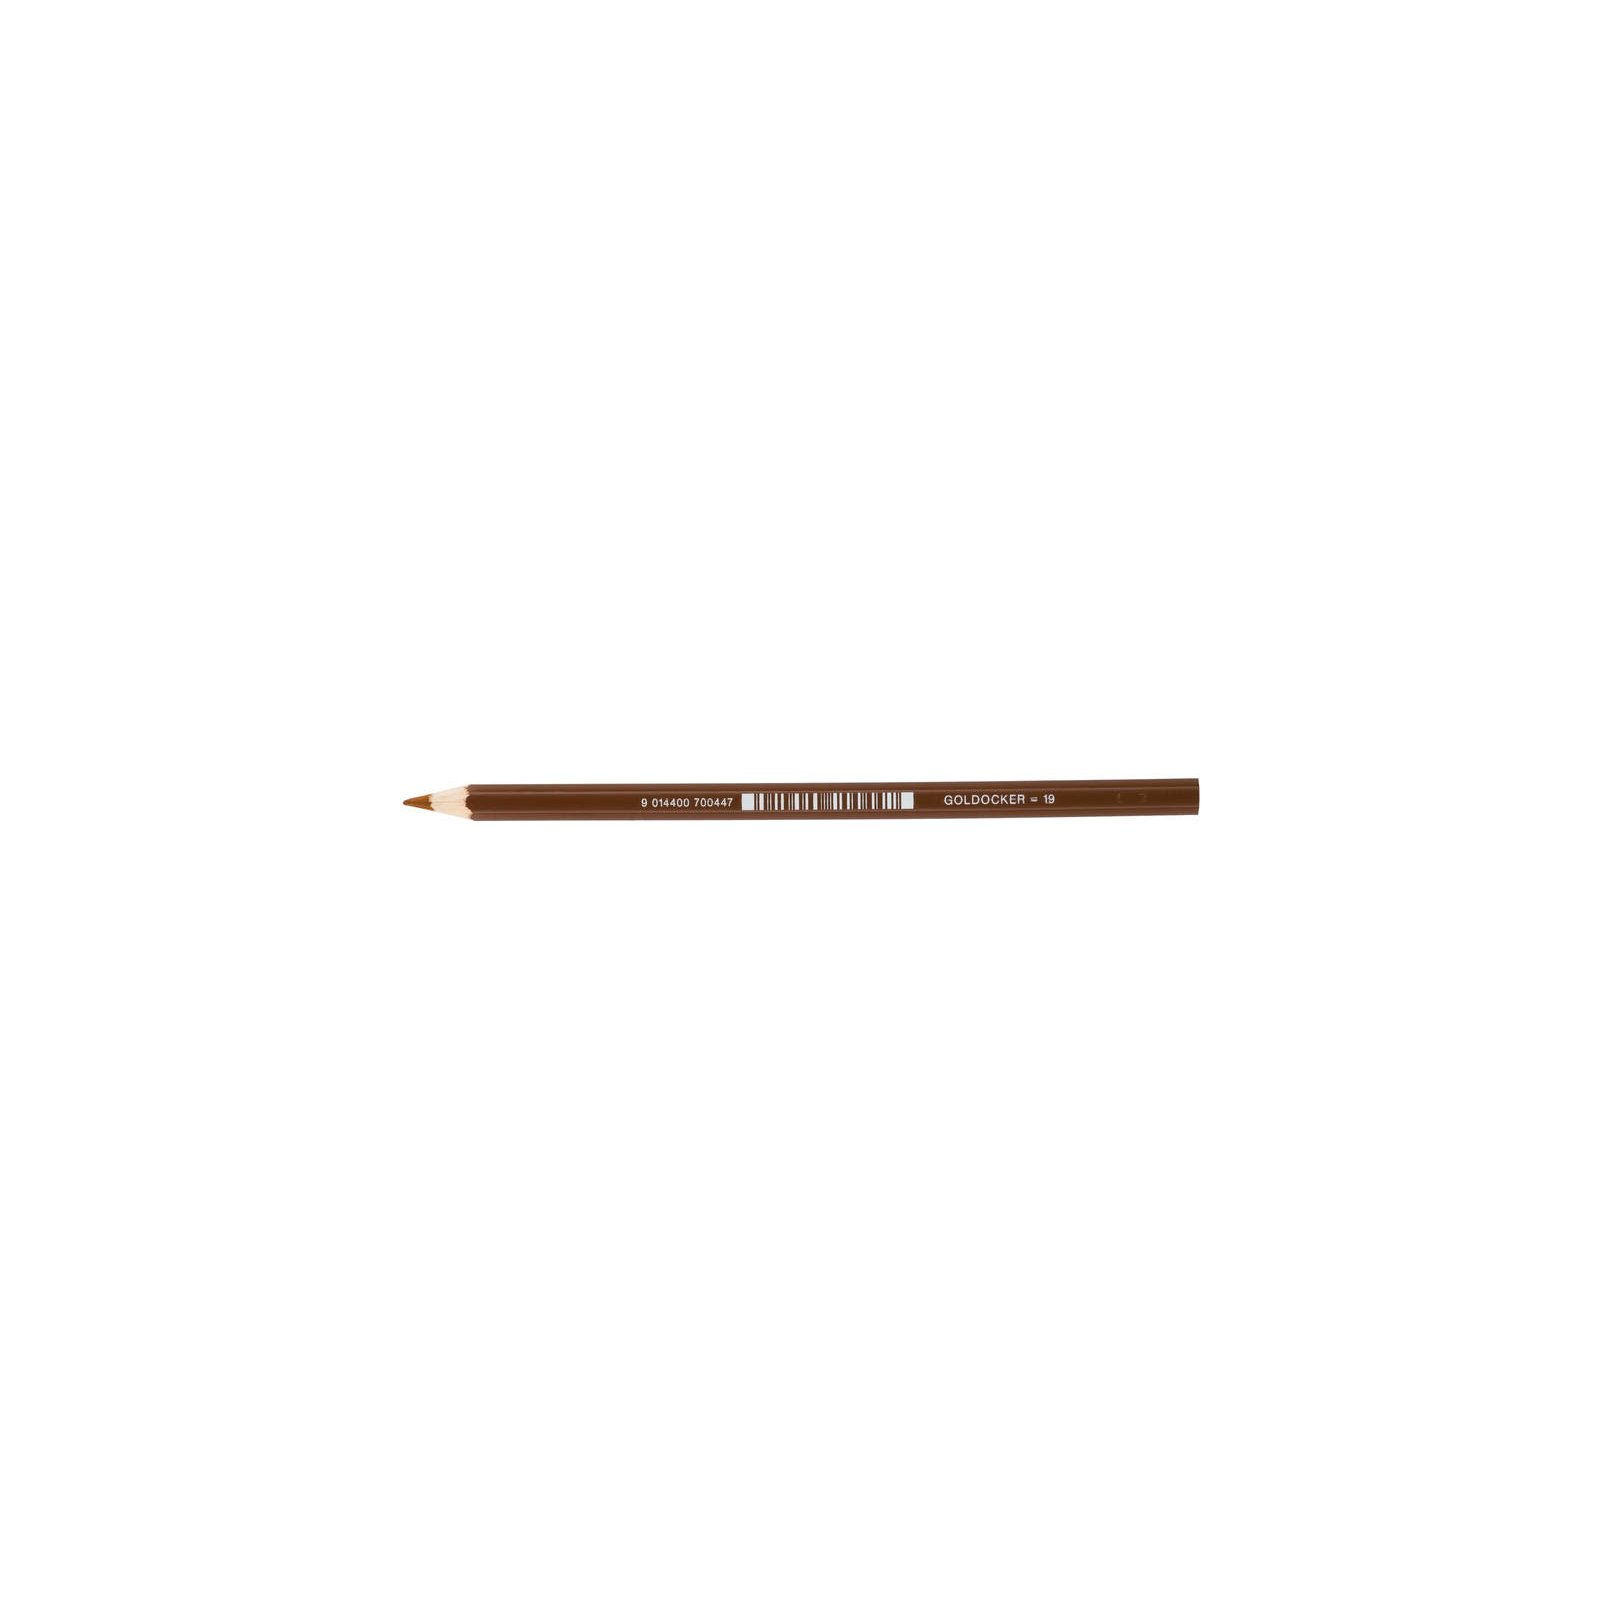 JOLLY Buntstift Supersticks Classic Einzelstift Goldocker = 19